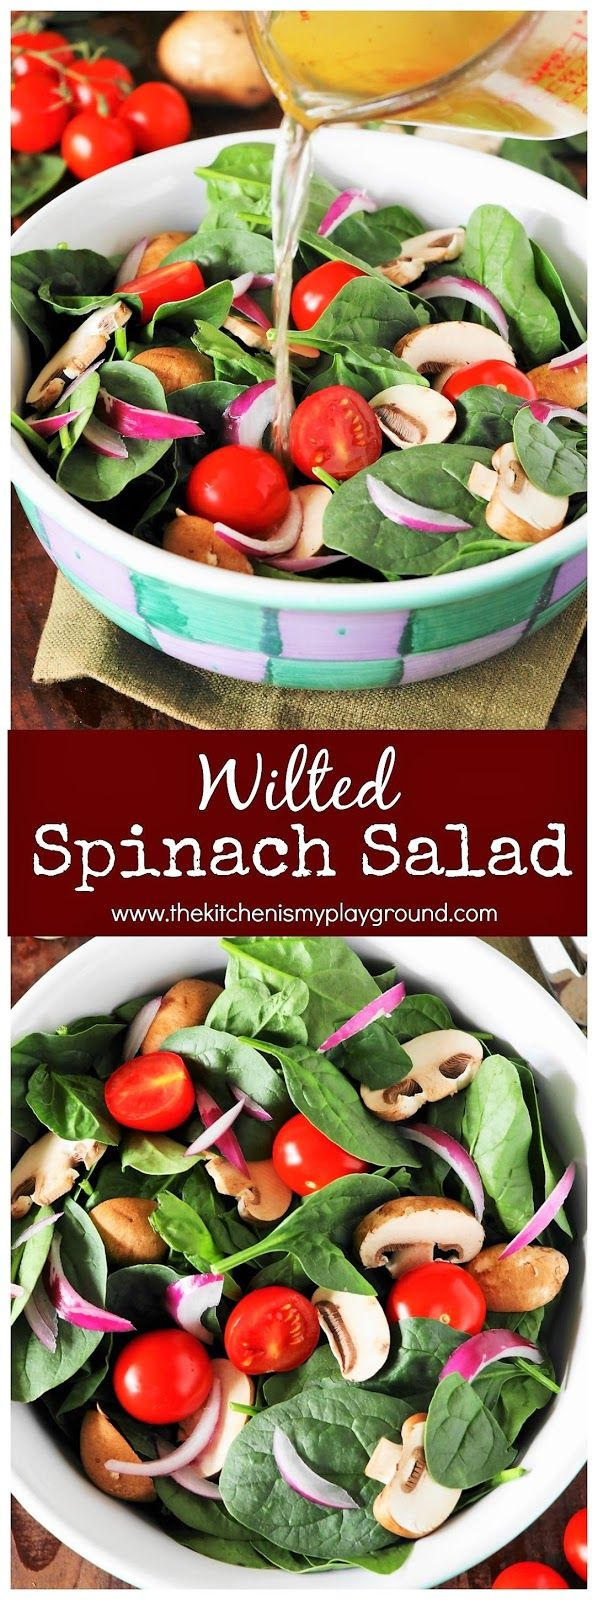 How to Make Wilted Spinach Salad with Warm Dressing Image